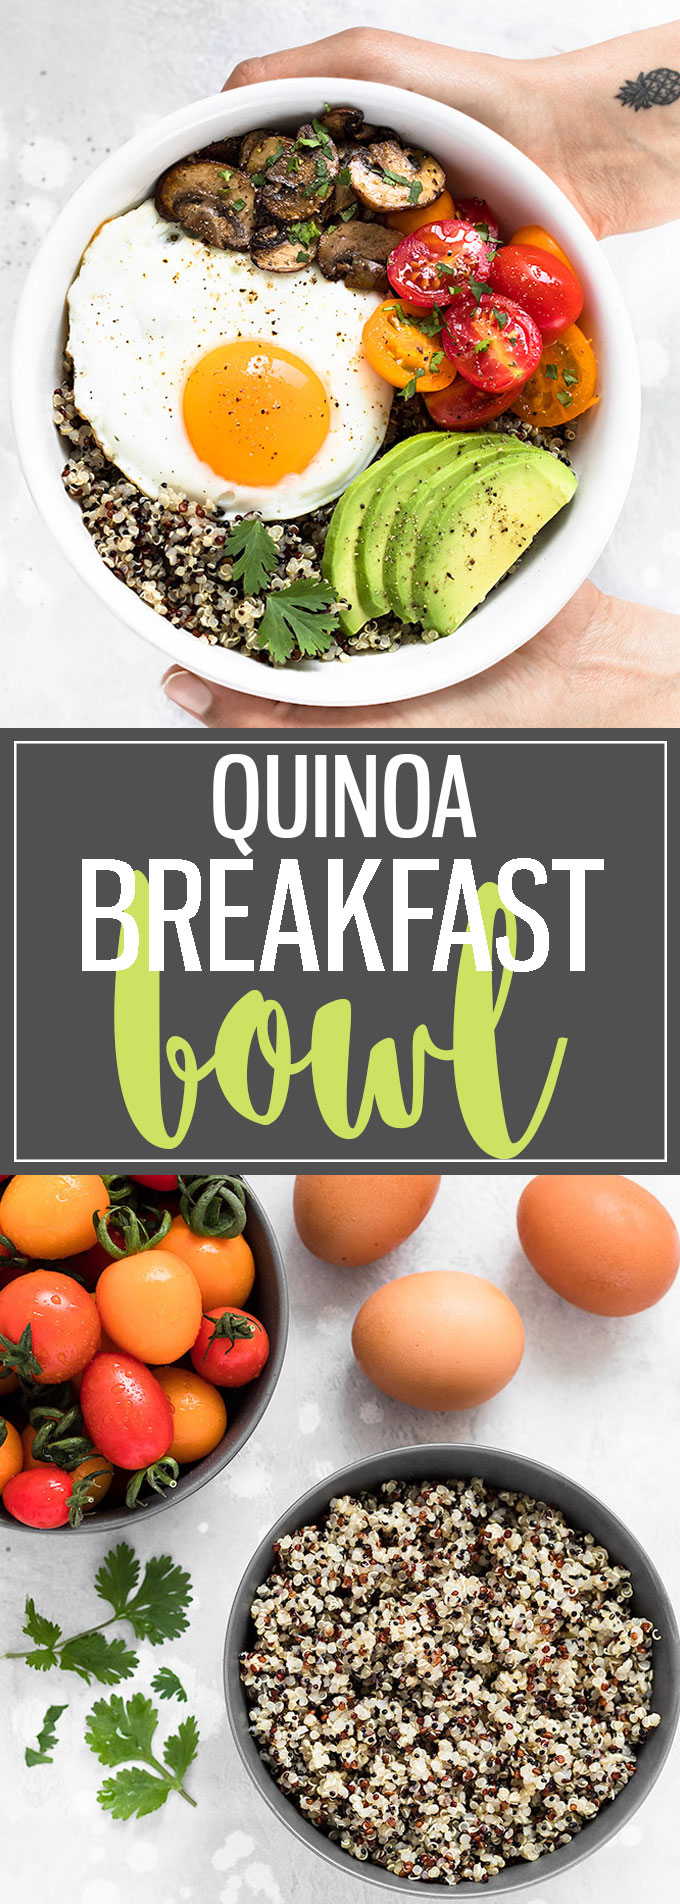 This Healthy Breakfast Bowl with Egg and Quinoa is a great way to combine nutritious ingredients into one simple, filling, and tasty meal. If you have cooked quinoa on hand, it comes together in about 10 minutes. Perfect for busy mornings! #breakfast #bowl #breakfastbowl #healthyeating #healthyrecipes #quinoa #mealprep #egg #brunch